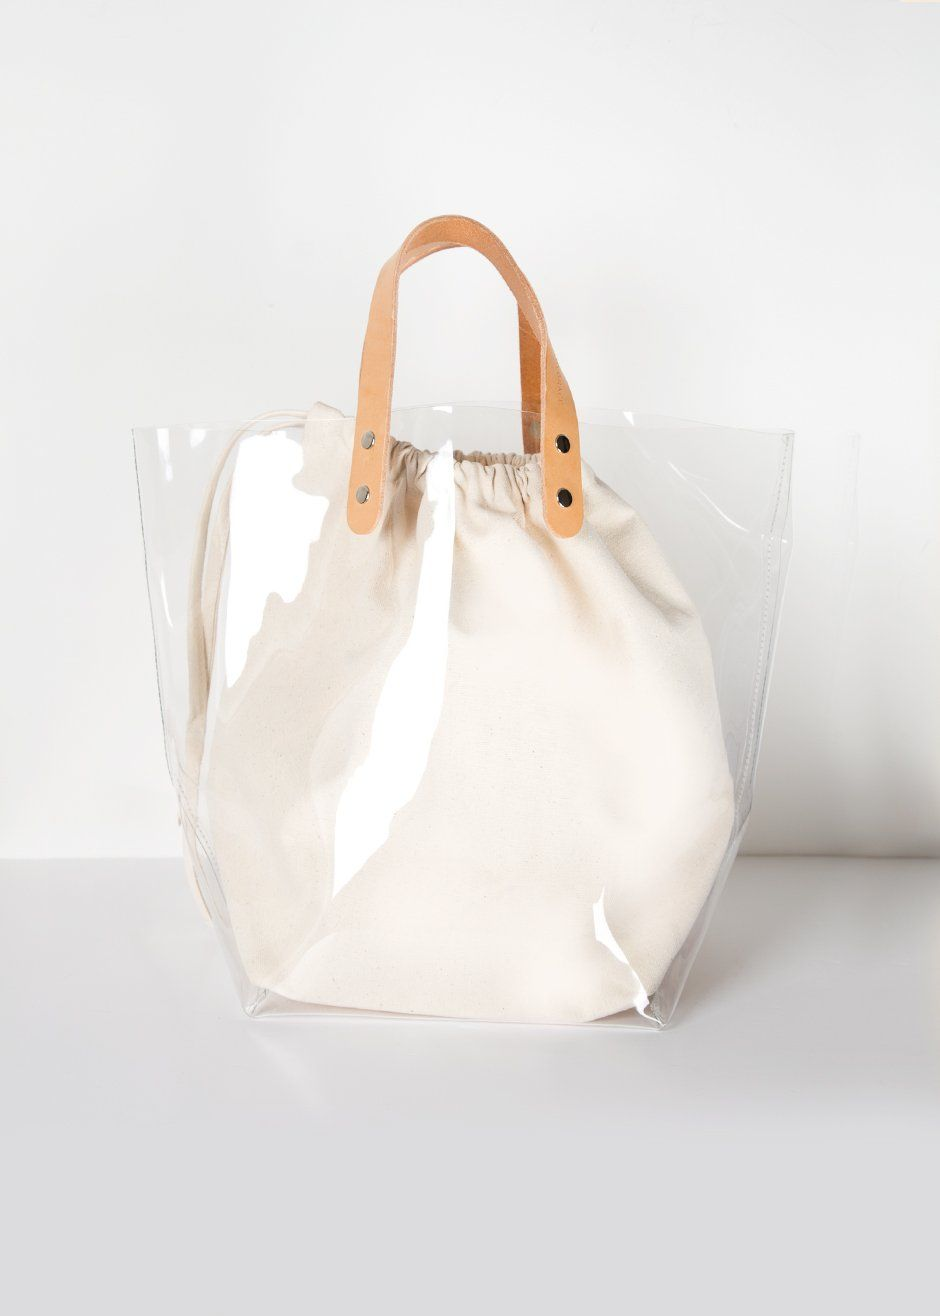 Clear Vinyl Canvas Tote Bag The Frankie Shop Bamboo Bag Bags Canvas Tote Bags